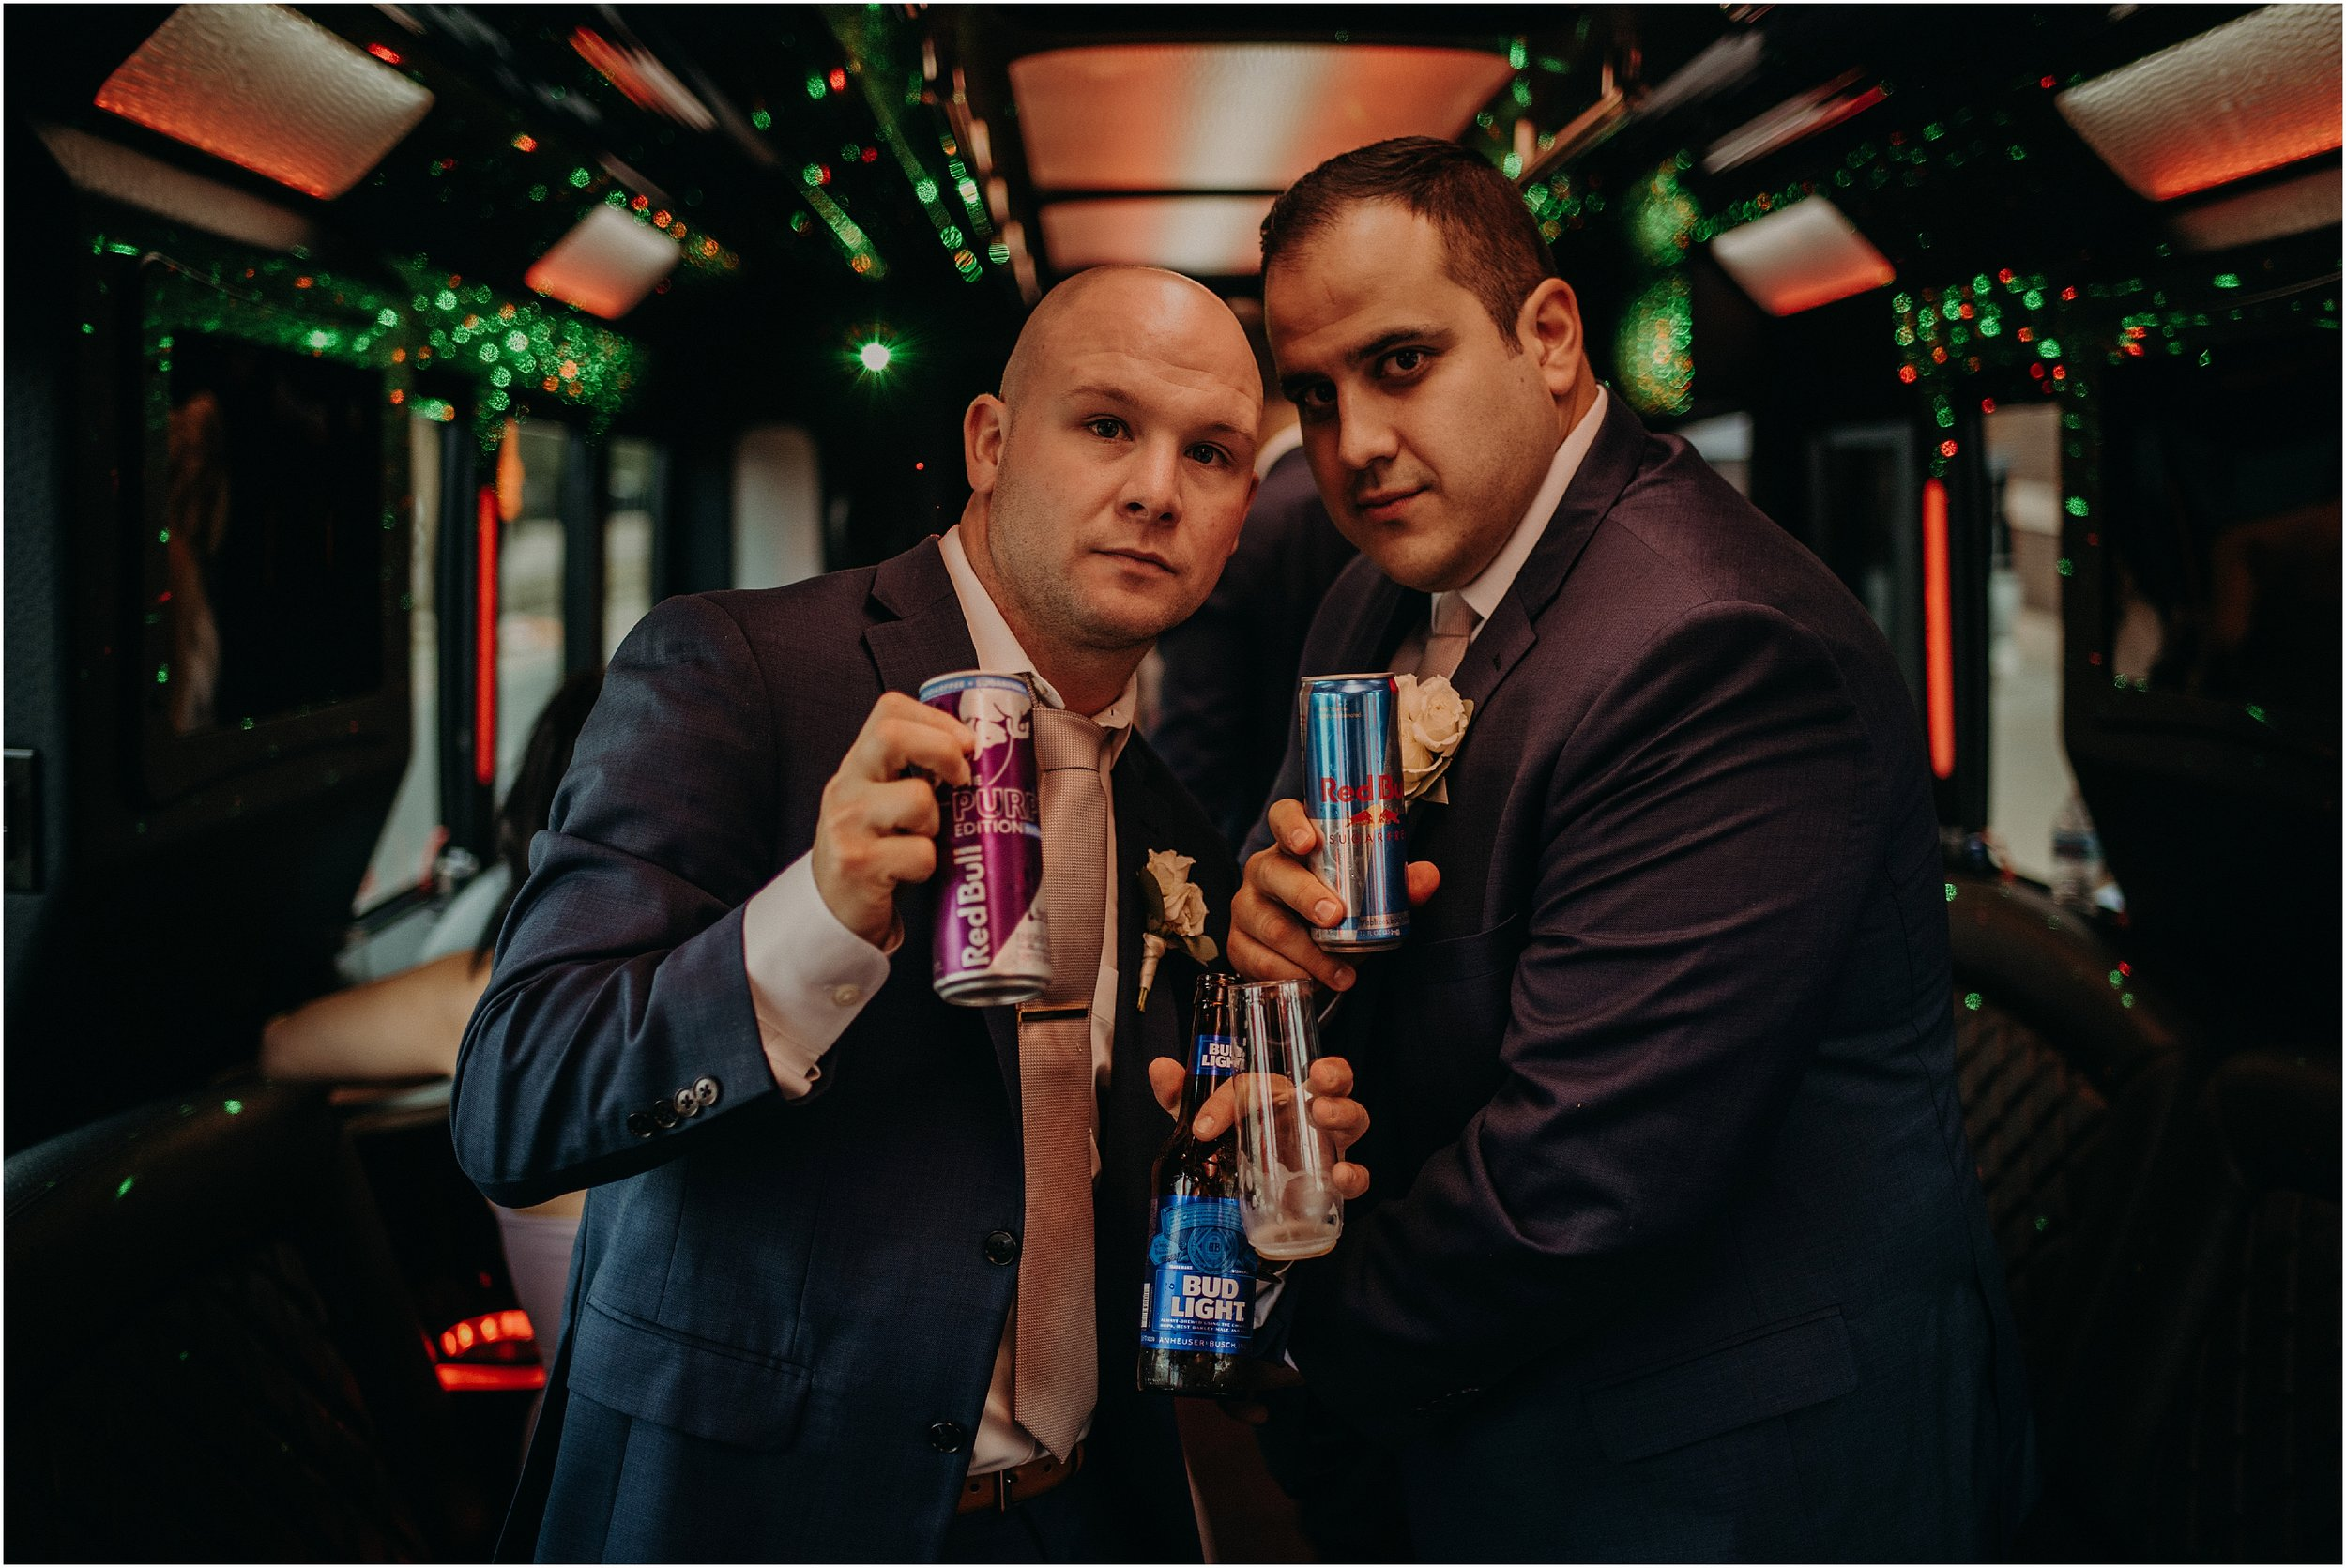 Groomsmen get lit on the party bus